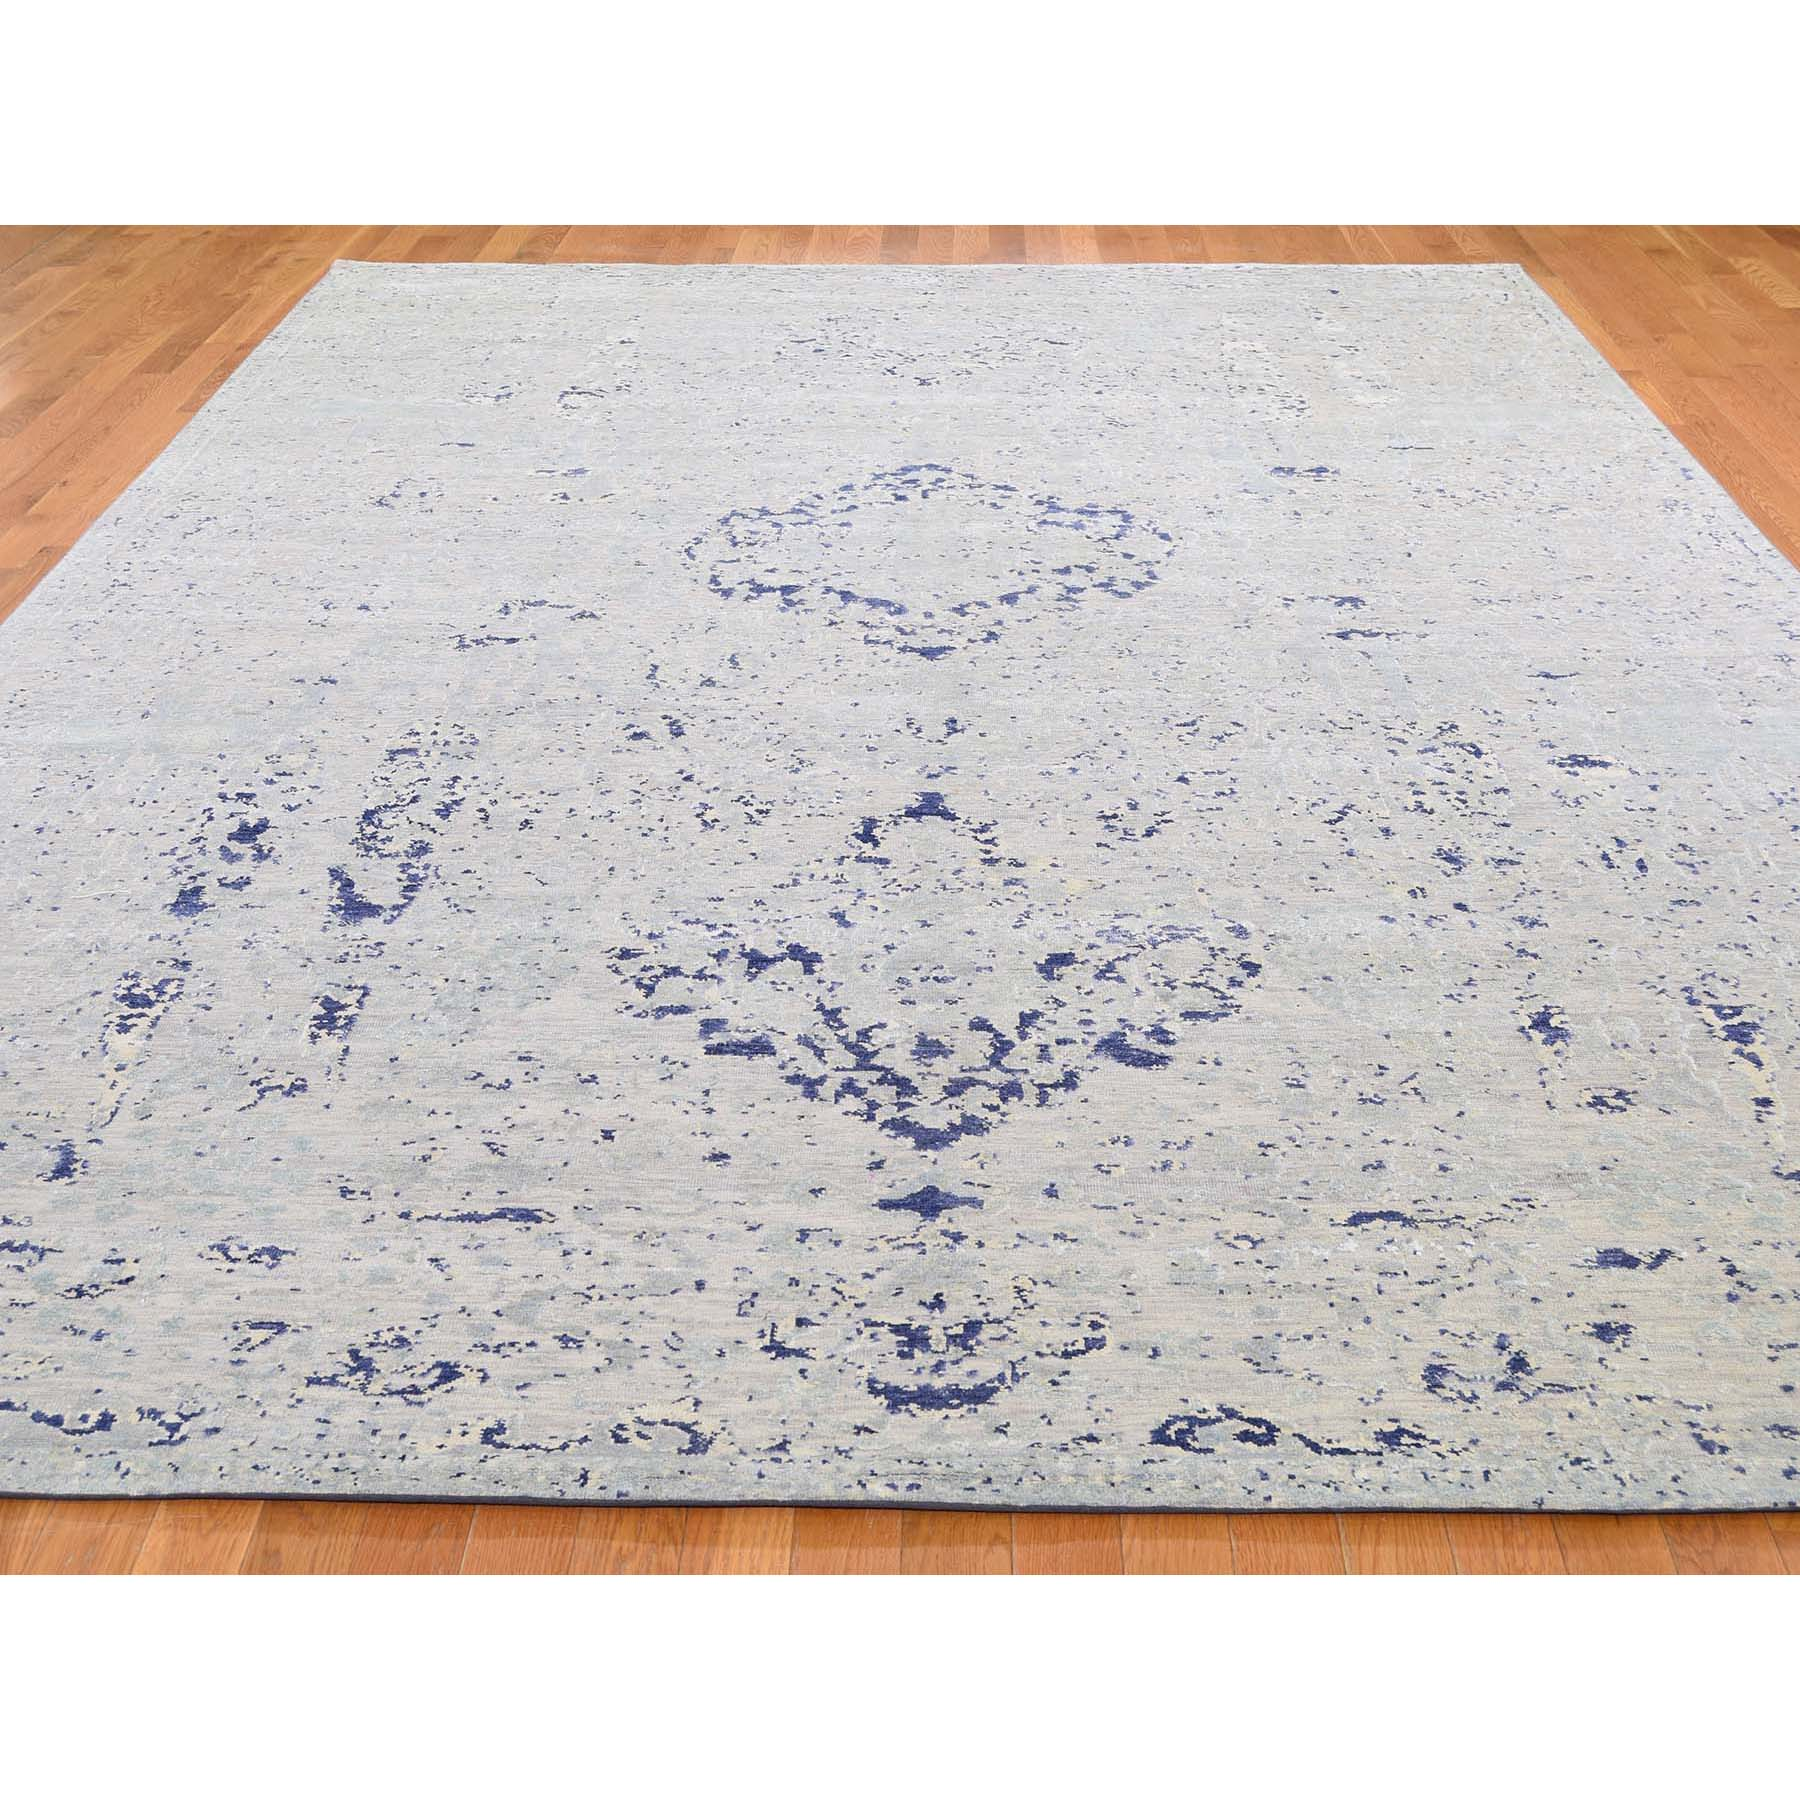 8-10 x12-2  Diminishing Cypress Tree With Medallion Design Silk With Textured Wool Hand-Knotted Oriental Rug